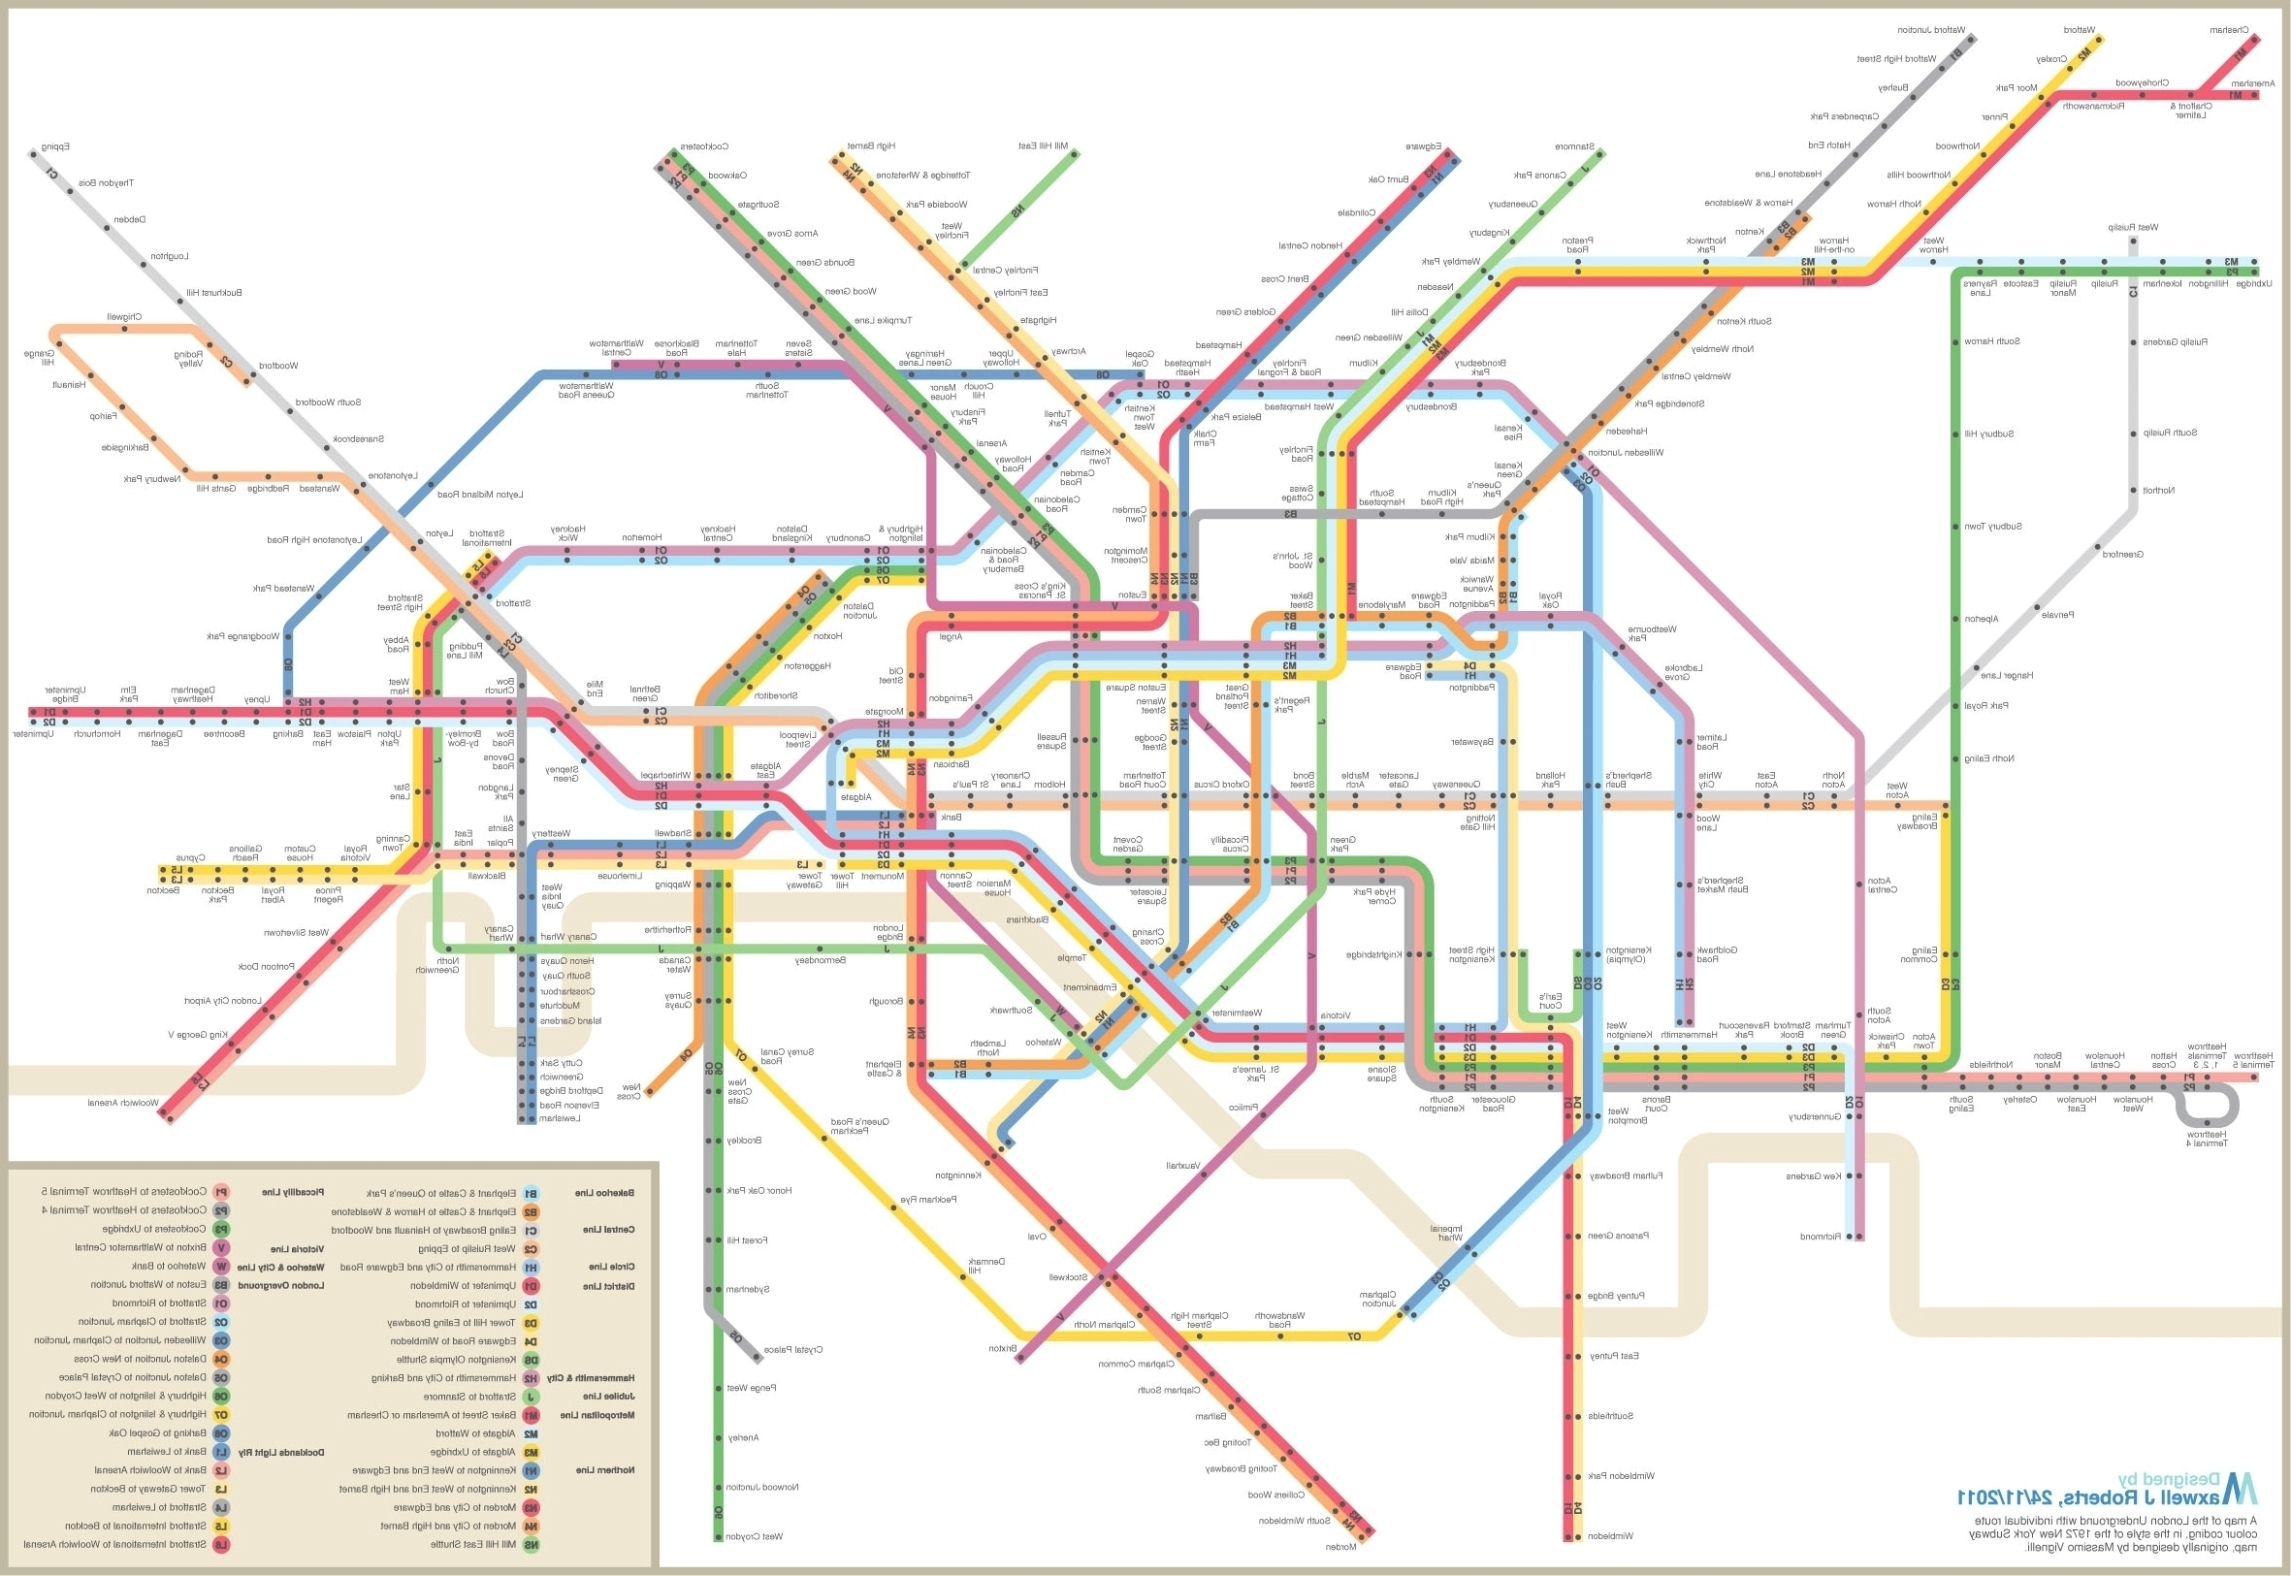 Nyc Subway Map Poster Nice Nyc Subway Map Poster And Awesome Ideas in Nyc Subway Map Wall Art (Image 12 of 20)